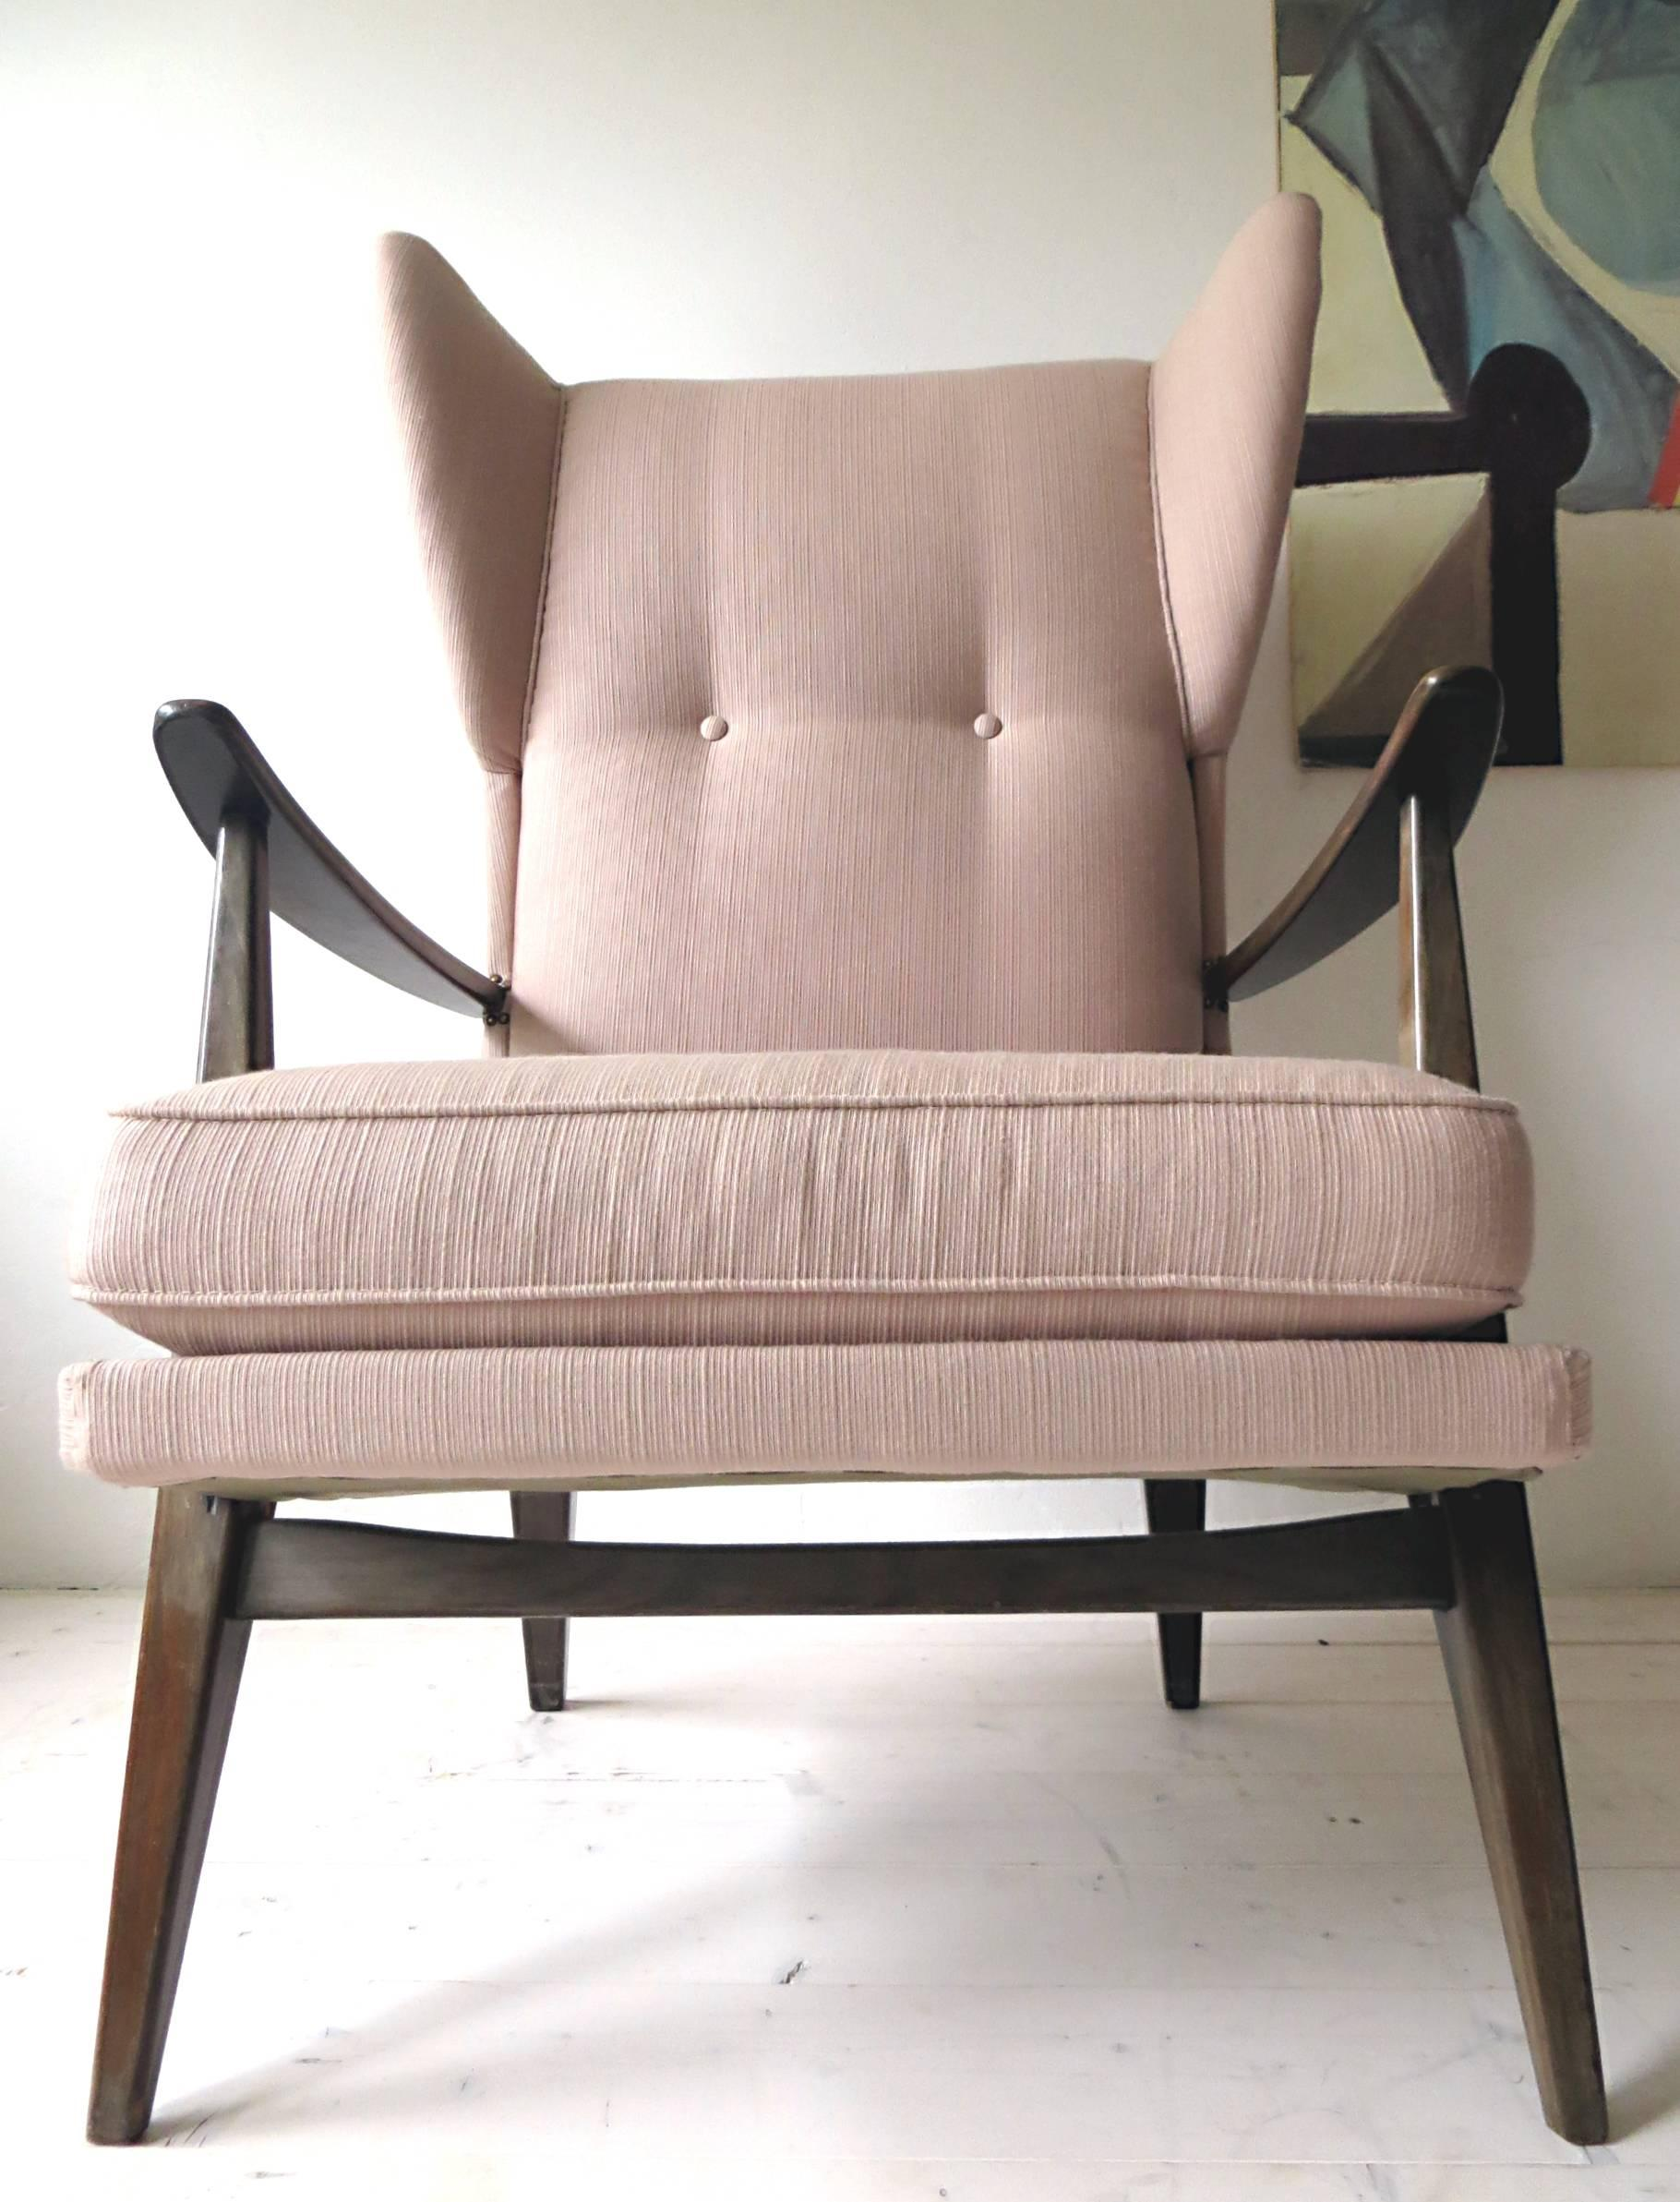 Knoll Antimott Sessel 1950s Knoll Antimott Wingback Chair By Walter Knoll In Fine Old Rose At 1stdibs